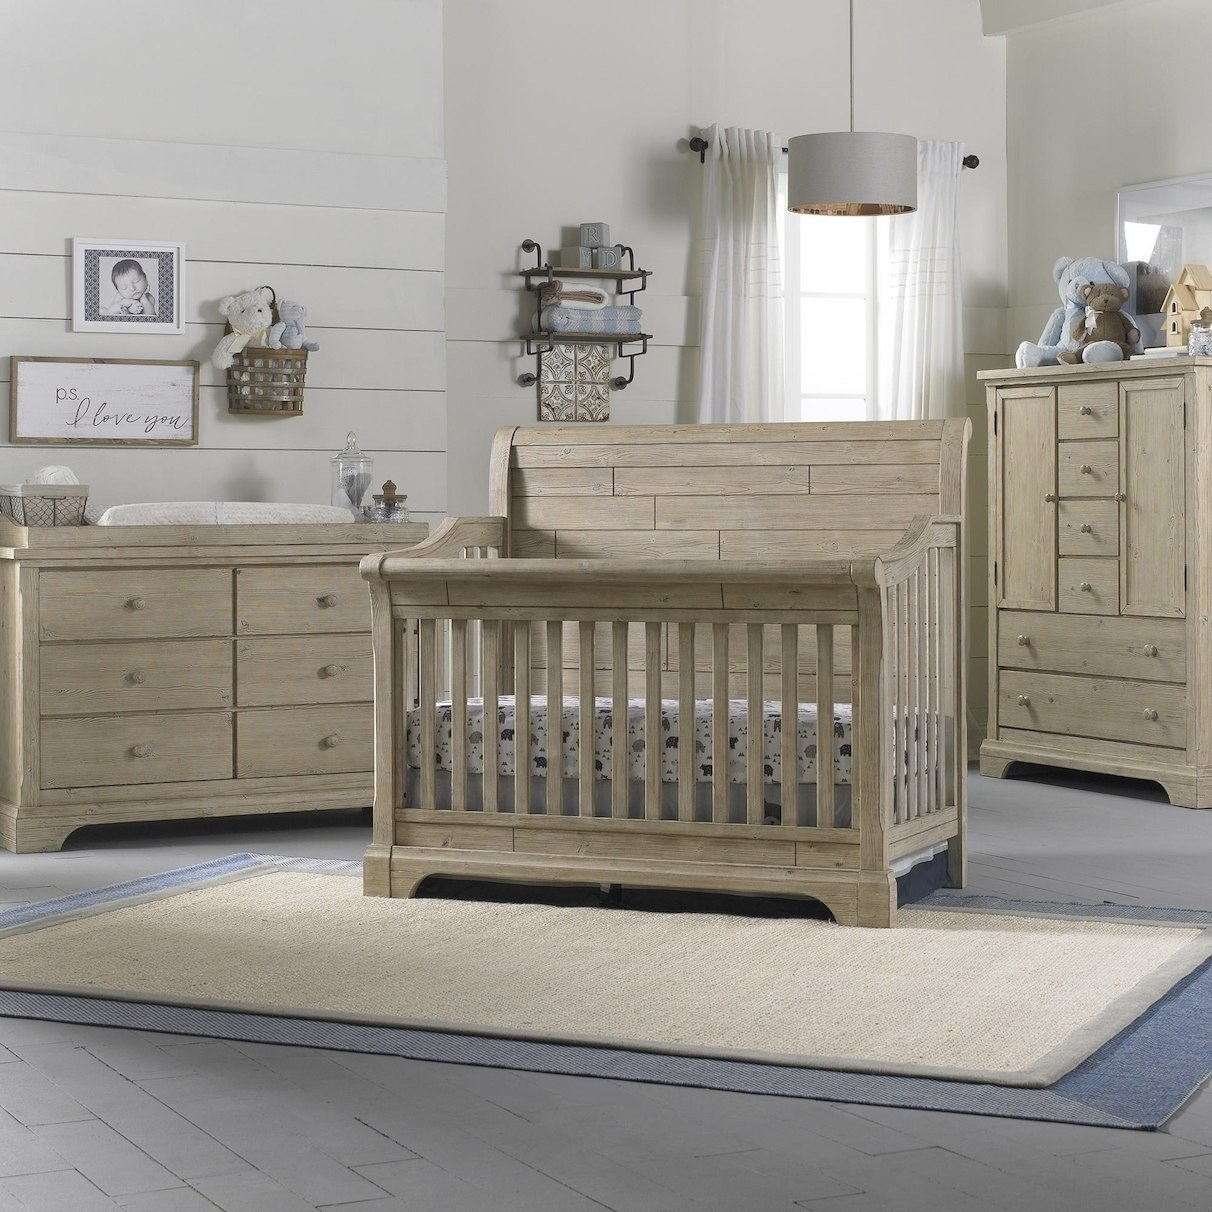 3 Pice Bedroom Set Luxury Cosi Bella Delfino 3 Piece Nursery Set In Farmhouse Pine